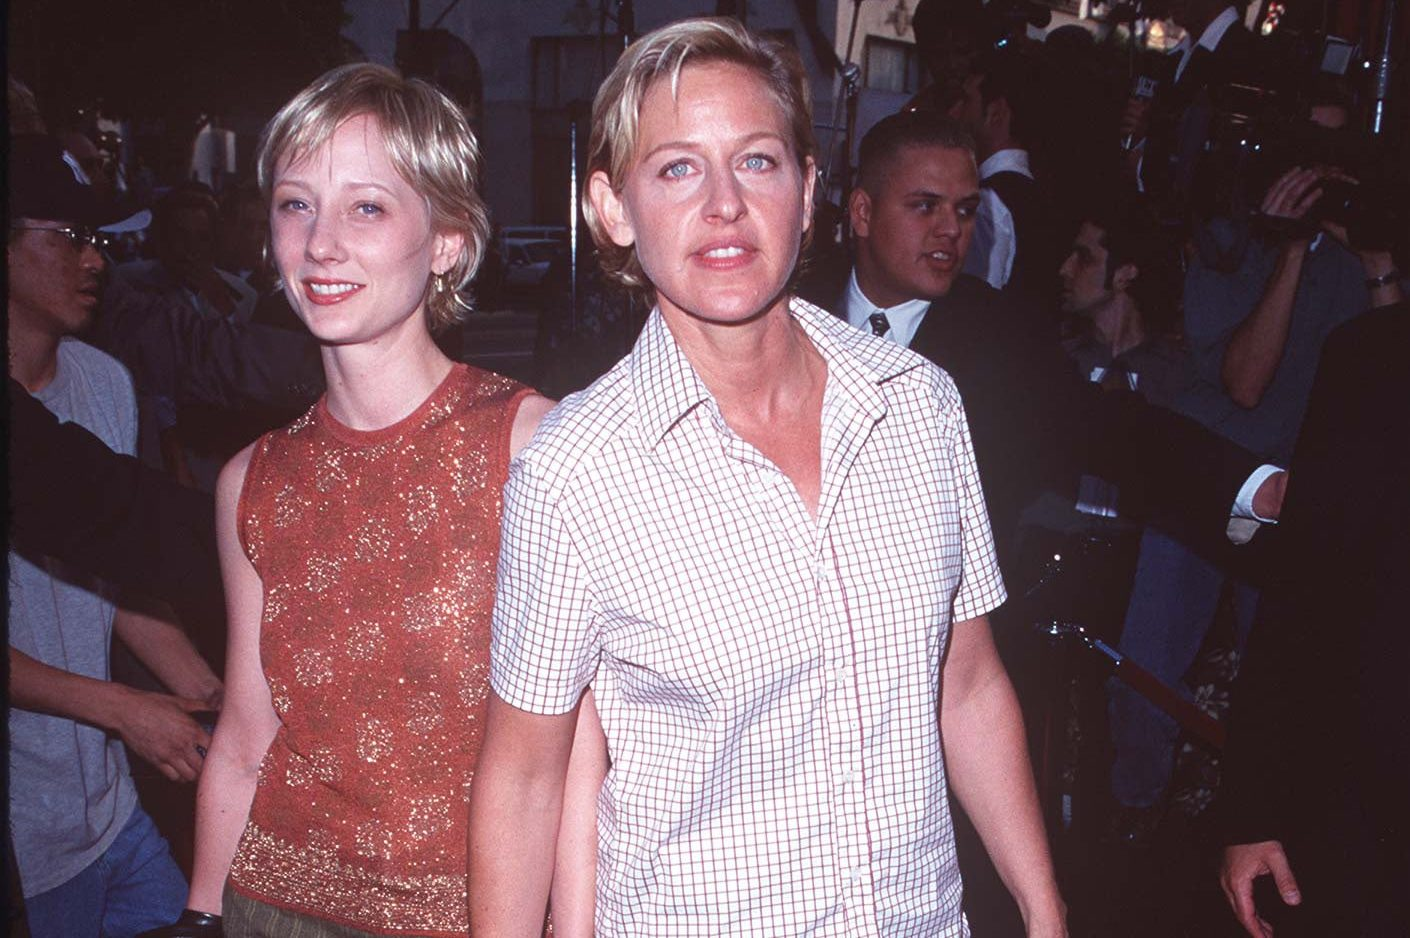 "Ellen Degeneres and Anne Heche ""width ="" 1410 ""height ="" 938 ""srcset ="" https://www.top5.com/wp-content/uploads/ 2013 / 07 / ellen-degeneres-and-anne-heche - e1553713118109.jpg 1410w, https://www.top5.com/wp-content/uploads/2013/07/ellen-degeneres-and-nene-heche - e1553713118109- 300x200.jpg 300w, https://www.top5.com/wp-content/uploads/2013/07/ellen-degeneres-and-anne-heche--e1553713118109-768x511.jpg 768w, https: //www.top5 .com / wp-content / uploads / 2013/07 / ellen-degeneres-and-anne-heche - e1553713118109-1024x681.jpg 1024w ""Sizes ="" (max width: 1410px) 100vw, 1410px"